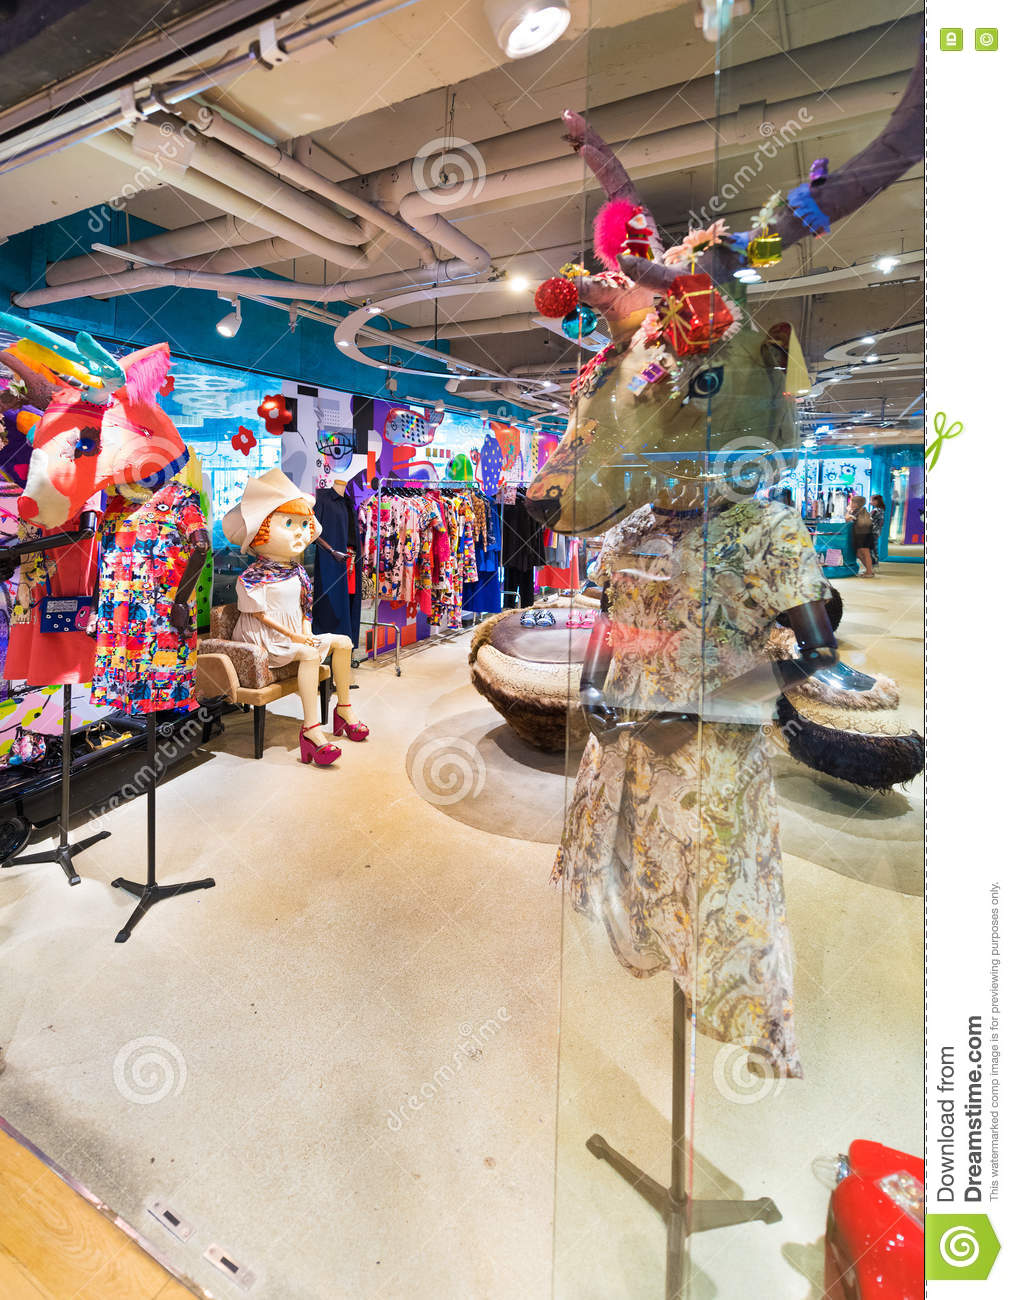 61a630d86b BANGKOK - MARCH 17, 2016: A ladies clothing store with fancy mannequins  having deer heads. It is located in the Siam Center (built in 1973), one of  Bangkoks ...